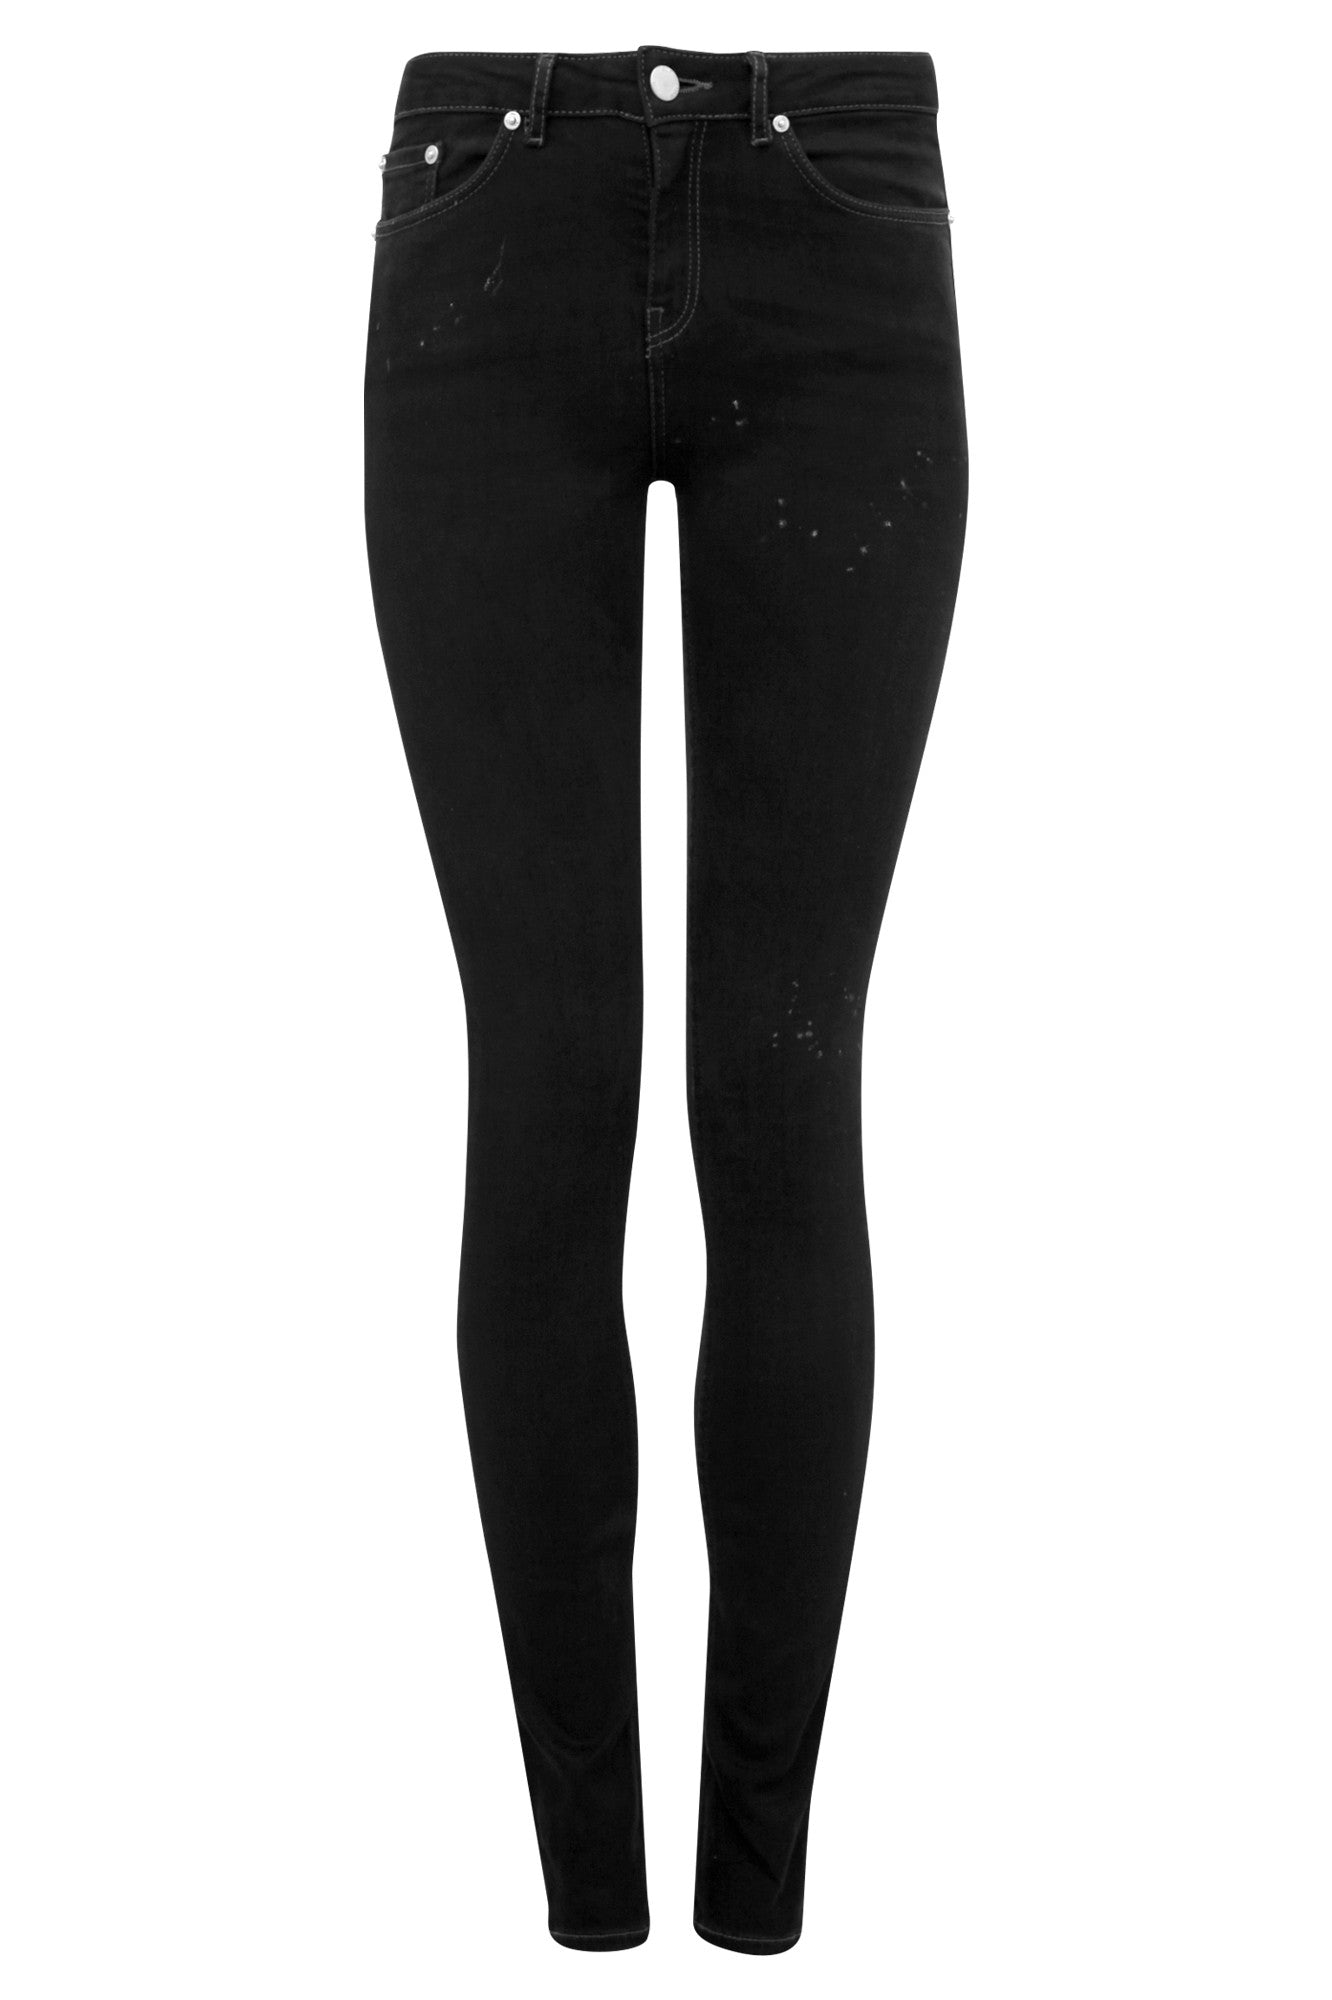 Womens Jeans 22 Tilden Black